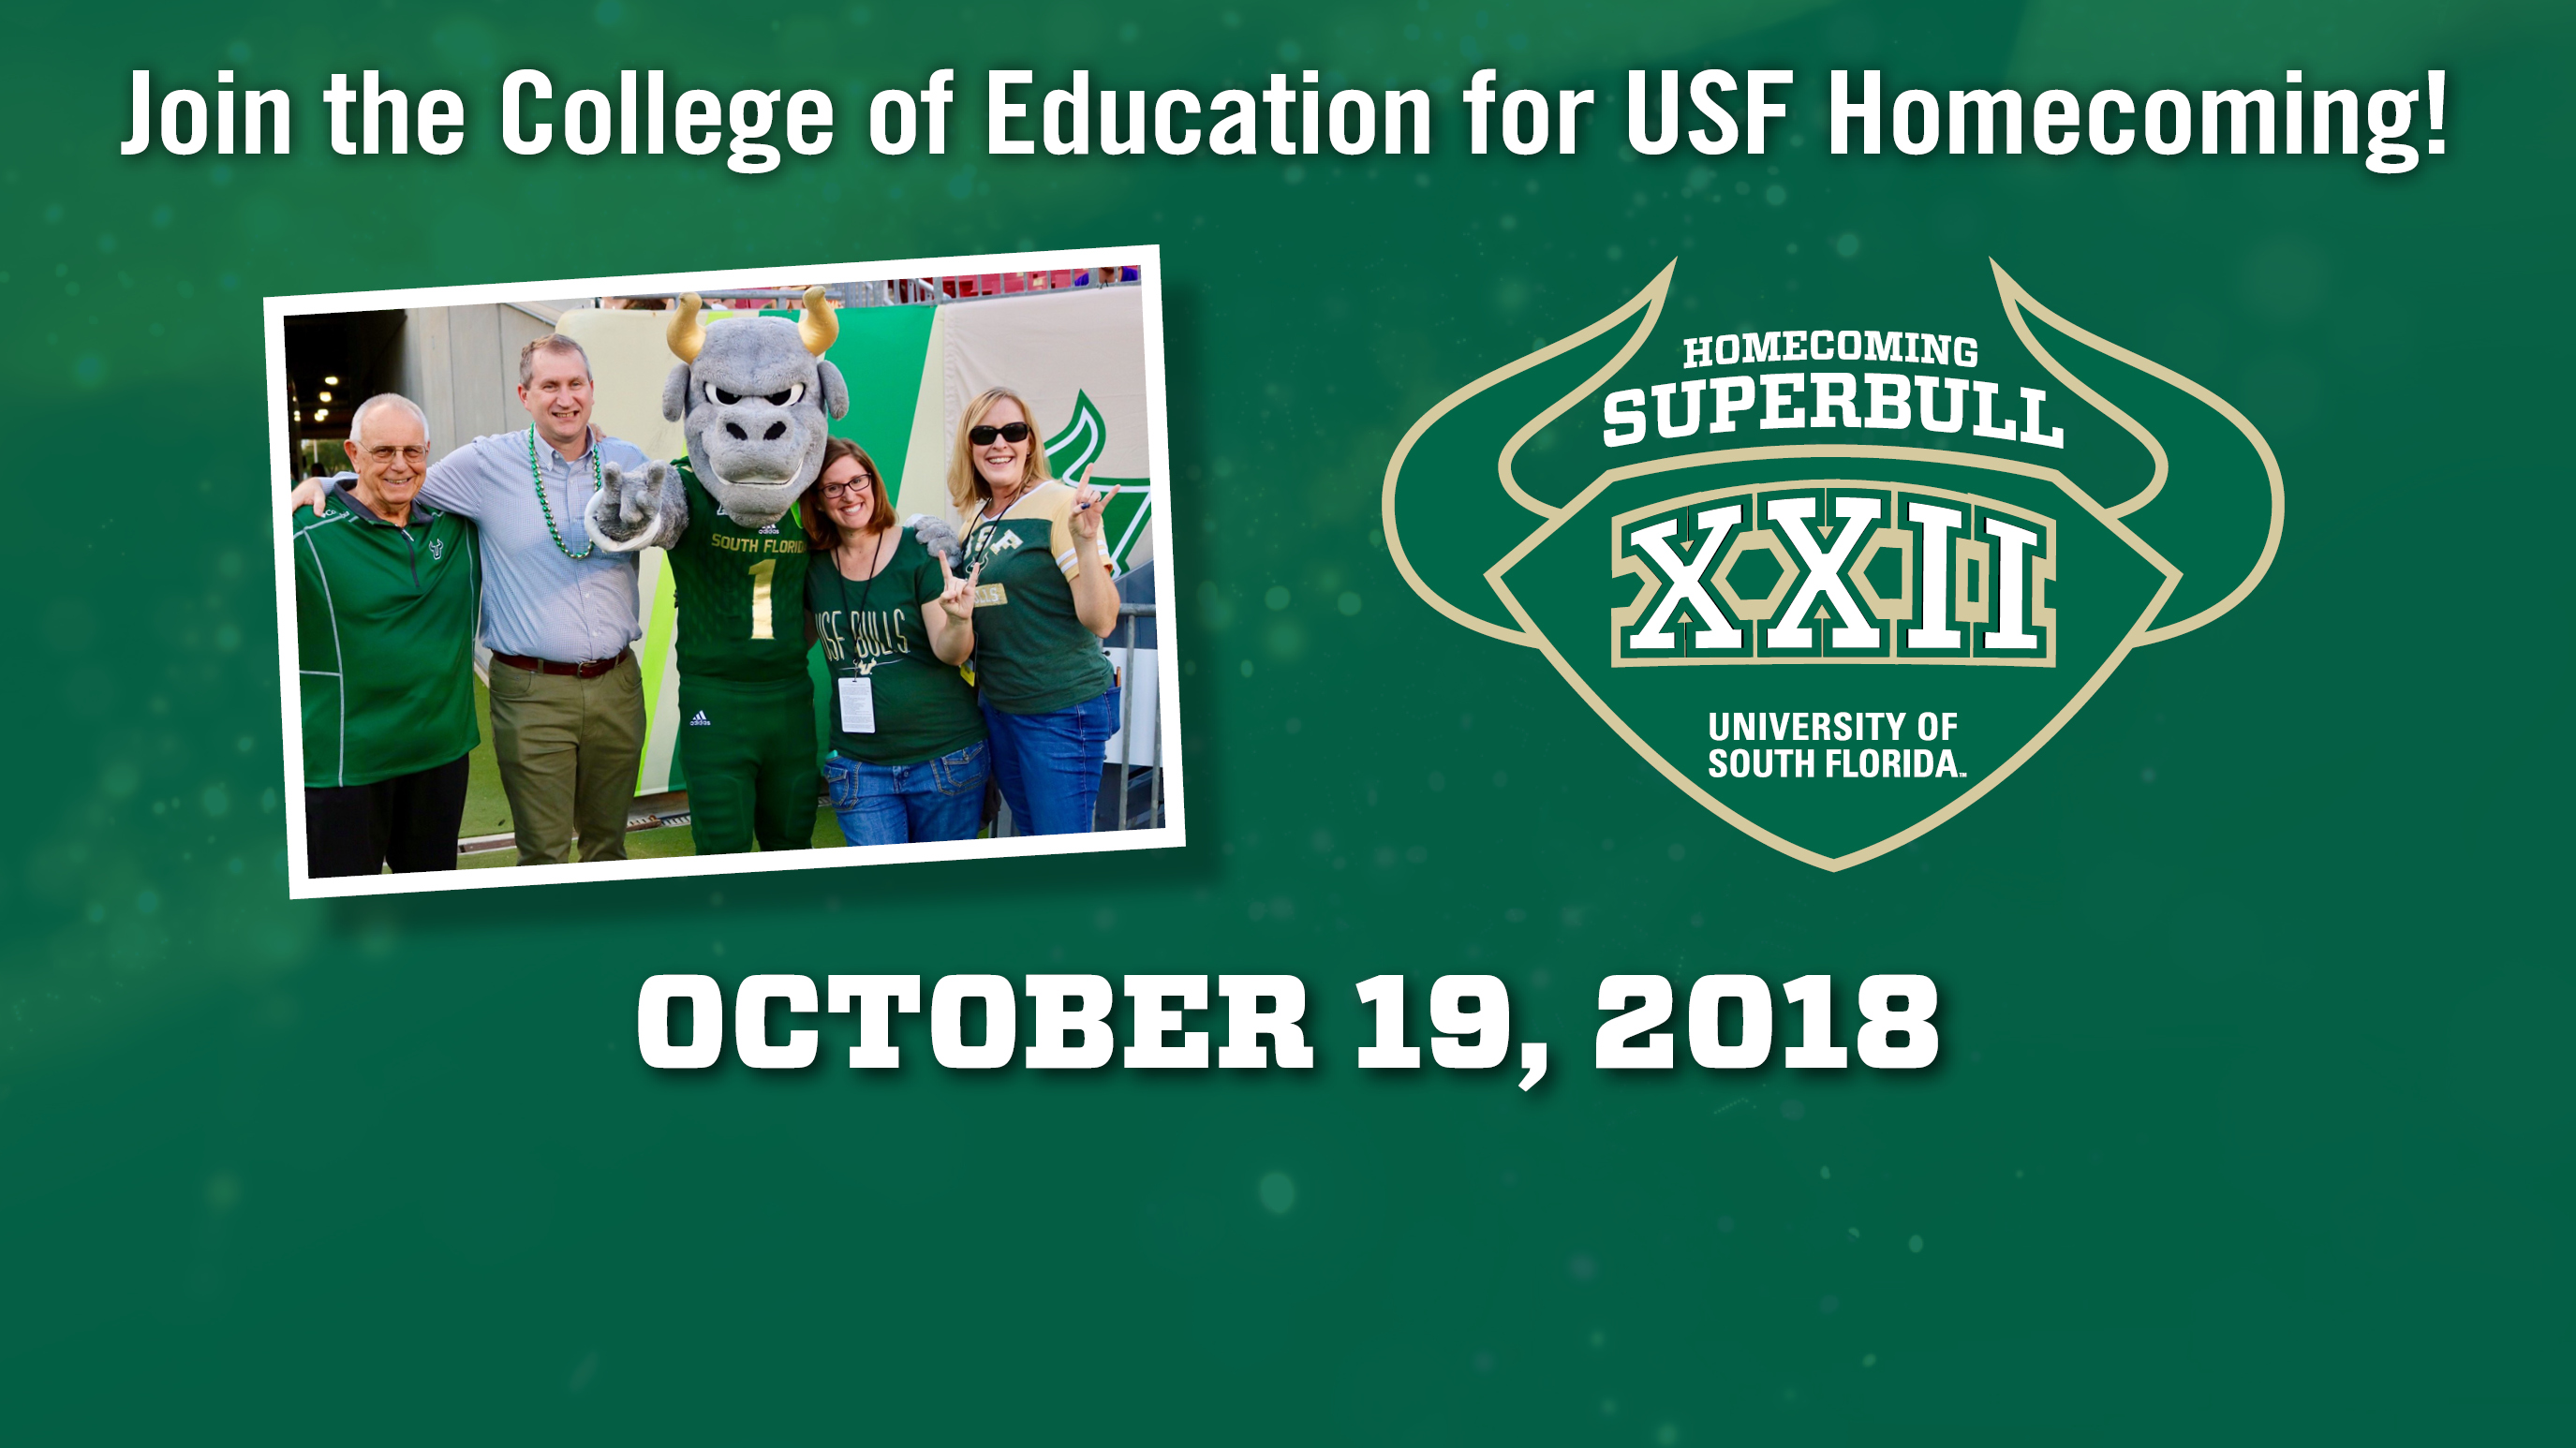 Join the College of Education for USF Homecoming on October 19, 2018